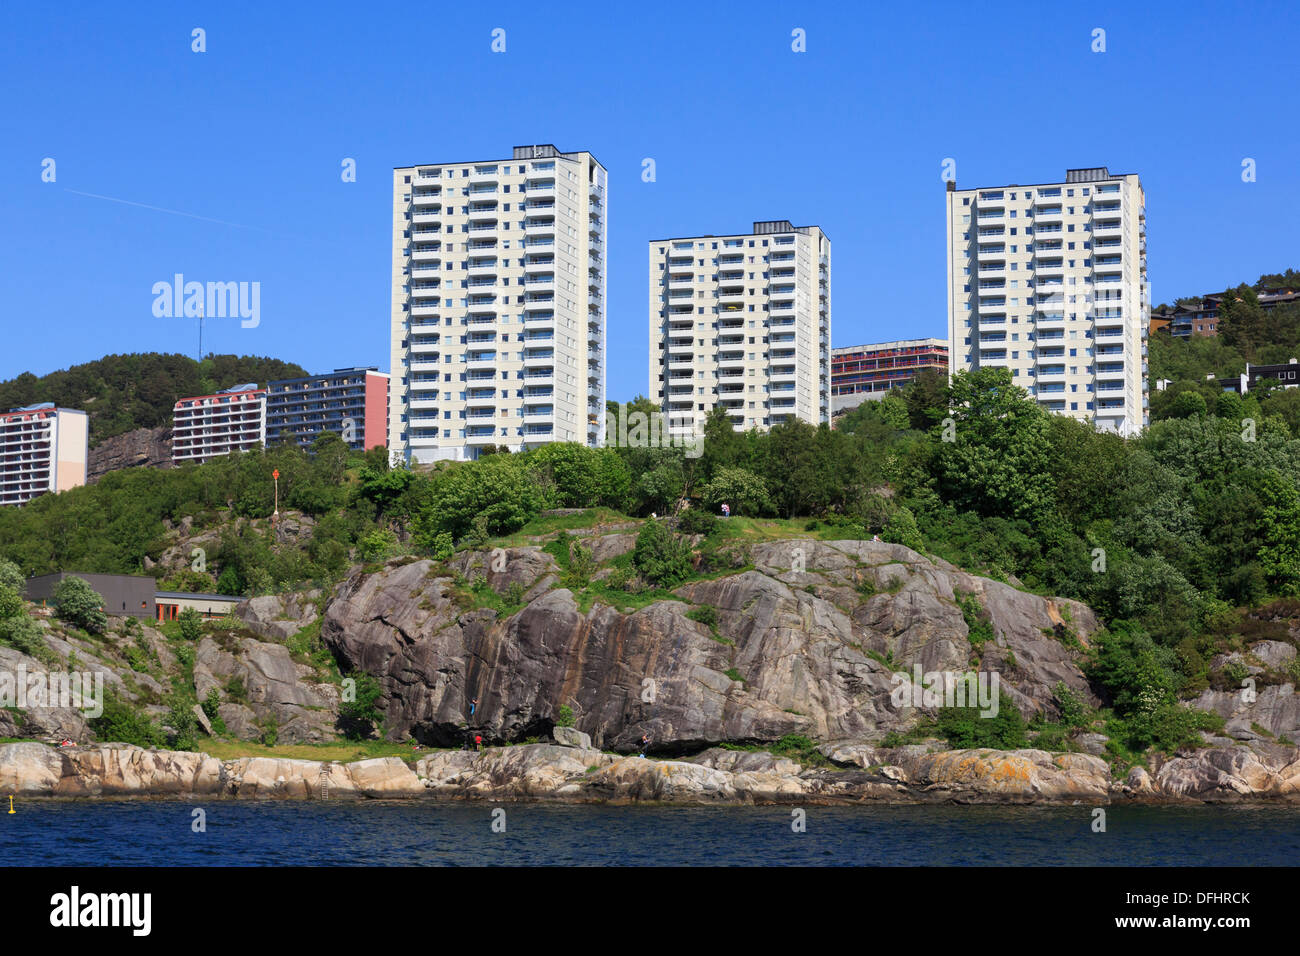 New hi-rise waterfront apartments above people climbing on rocks along Byfjorden fjord on the outskirts of Bergen, Norway - Stock Image